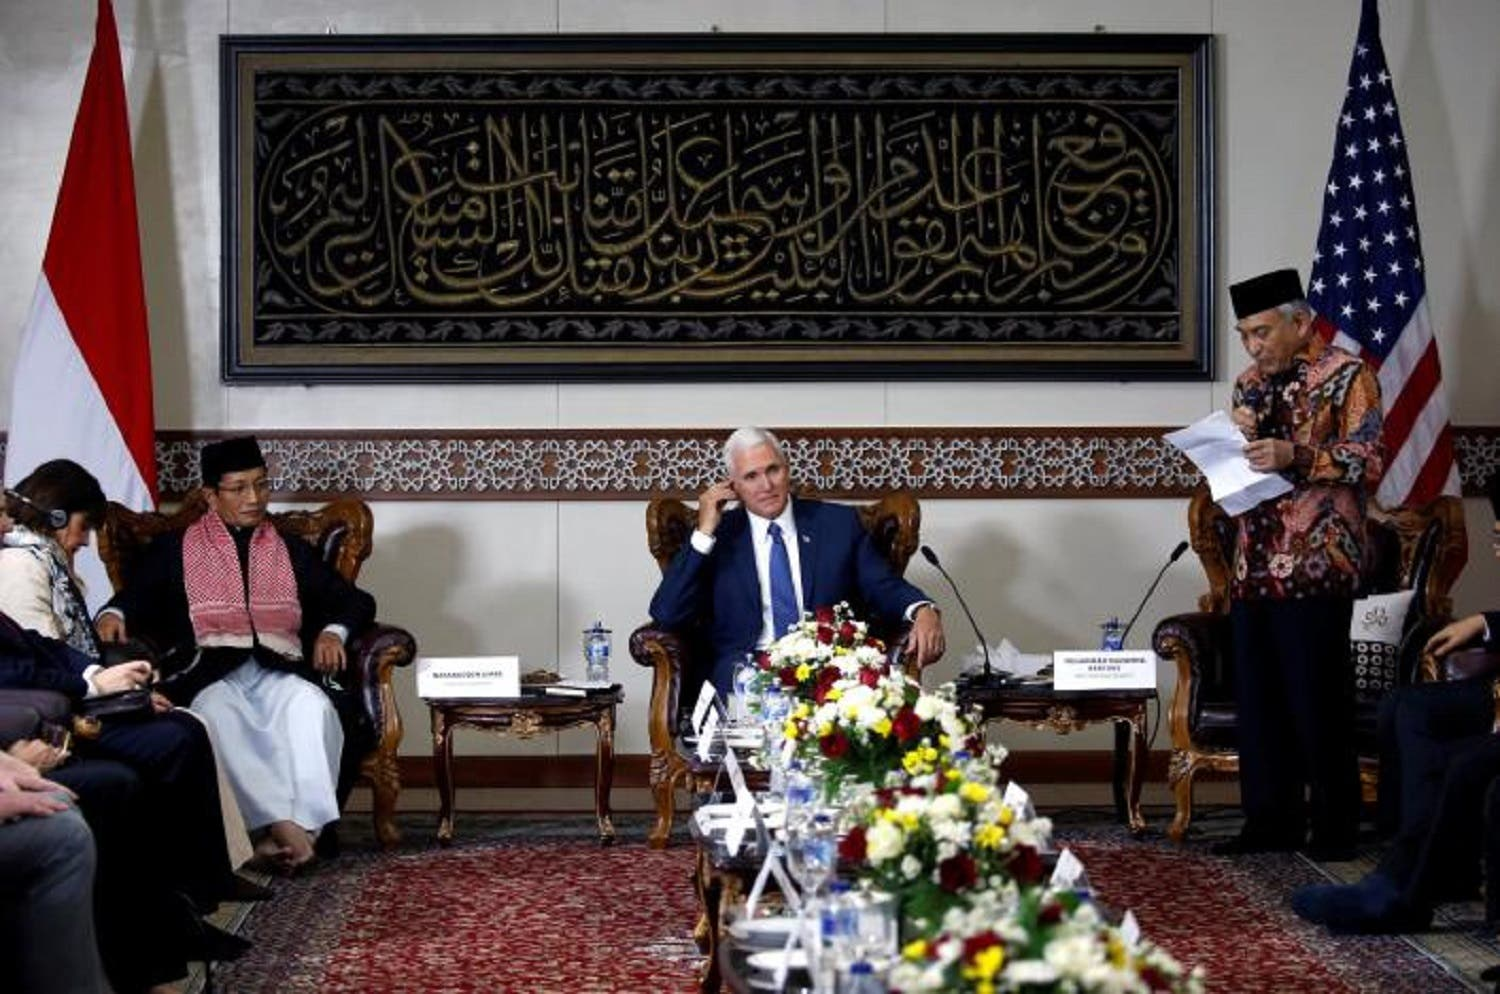 US Vice President Mike Pence listens during a meeting with Indonesian Muslim community leaders at the Istiqlal Mosque in Jakarta, on April 20, 2017. (Reuters)